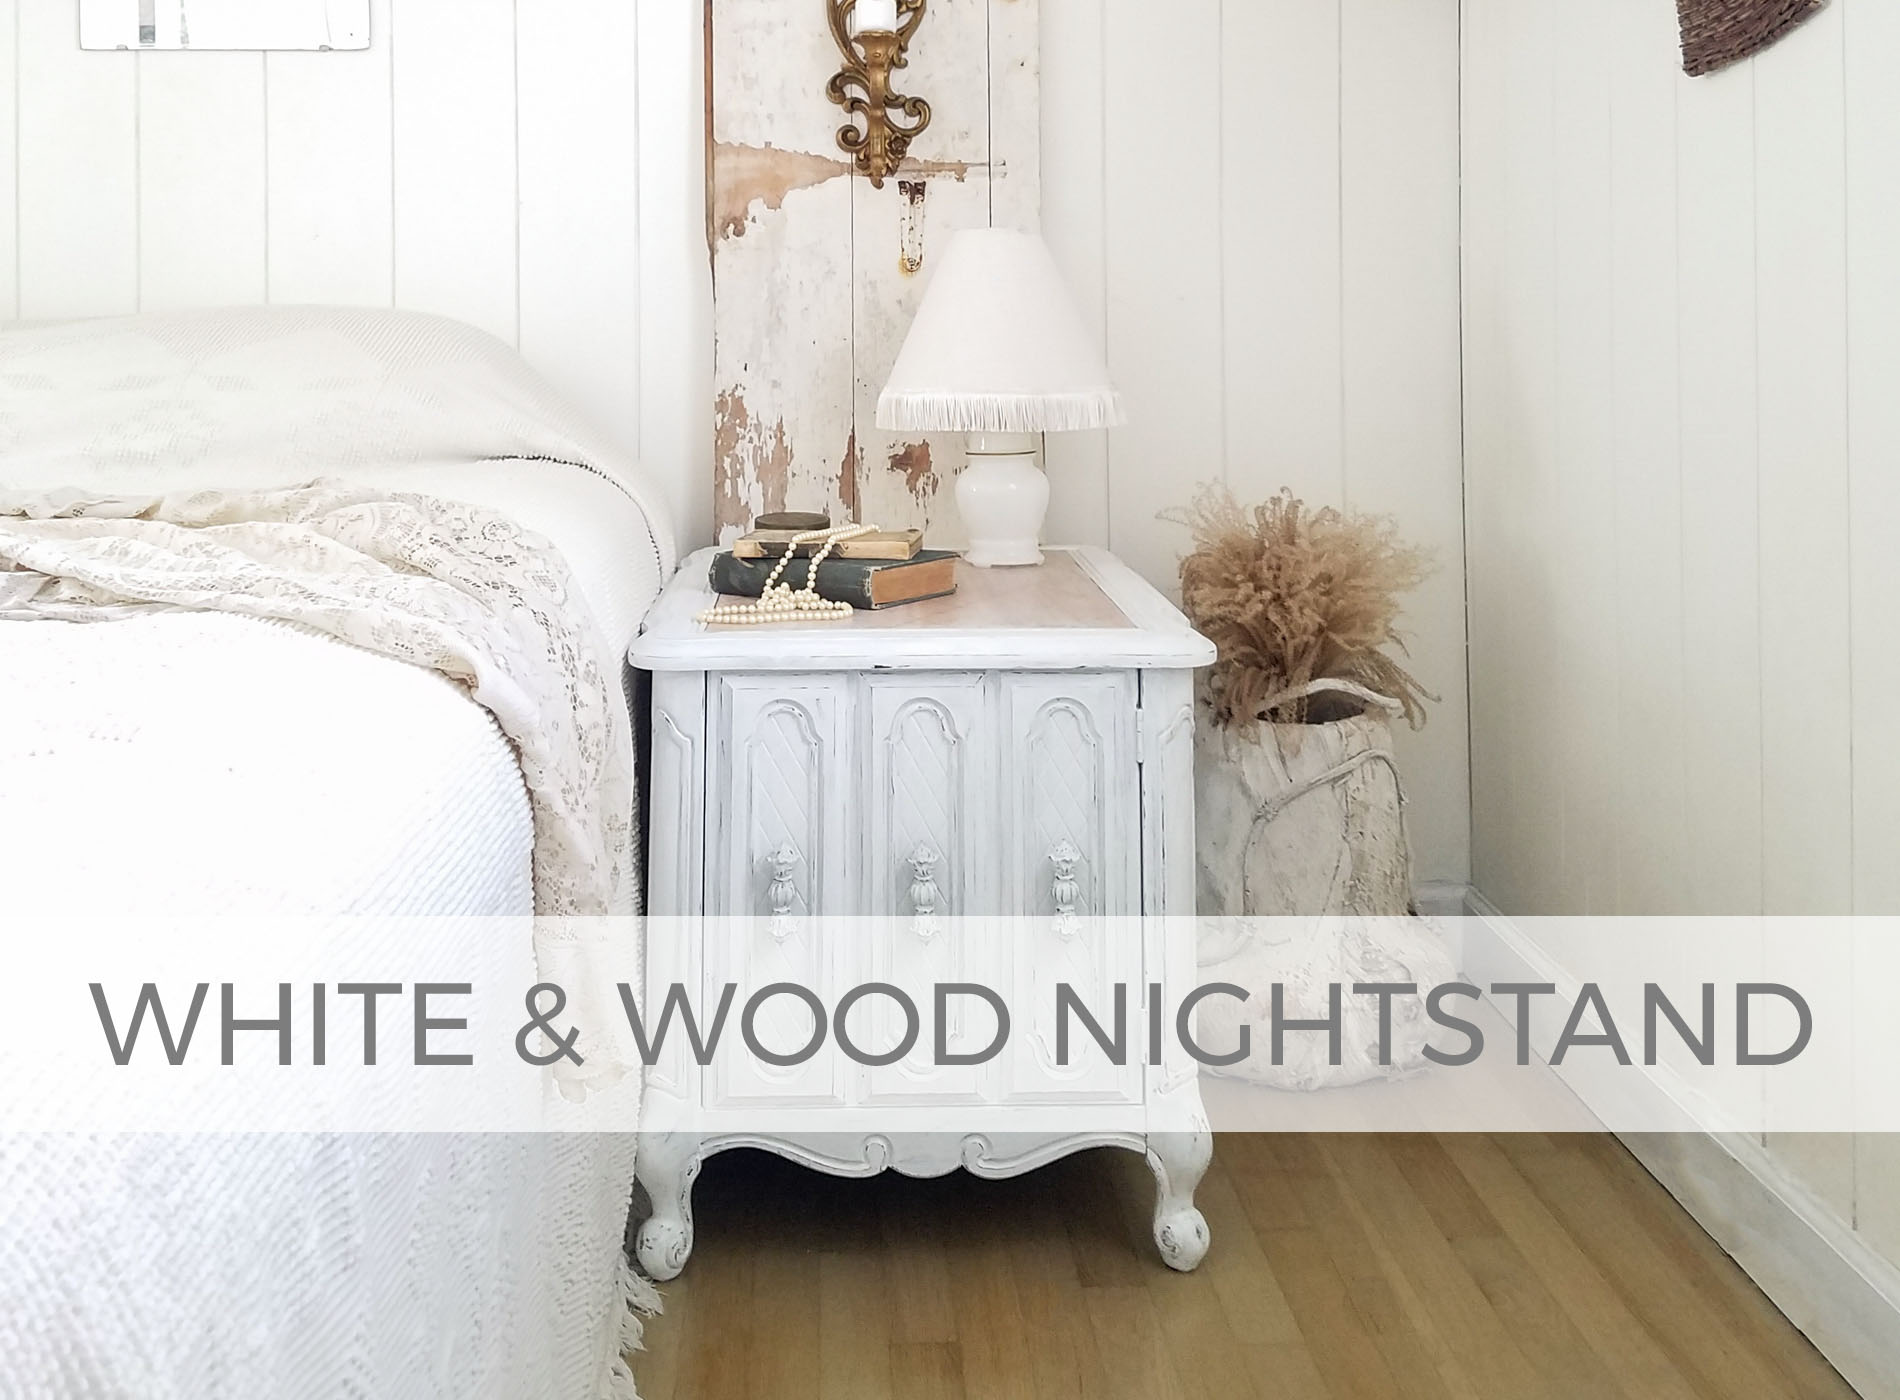 White & Wood Nightstand by Larissa of Prodigal Pieces | prodigalpieces.com